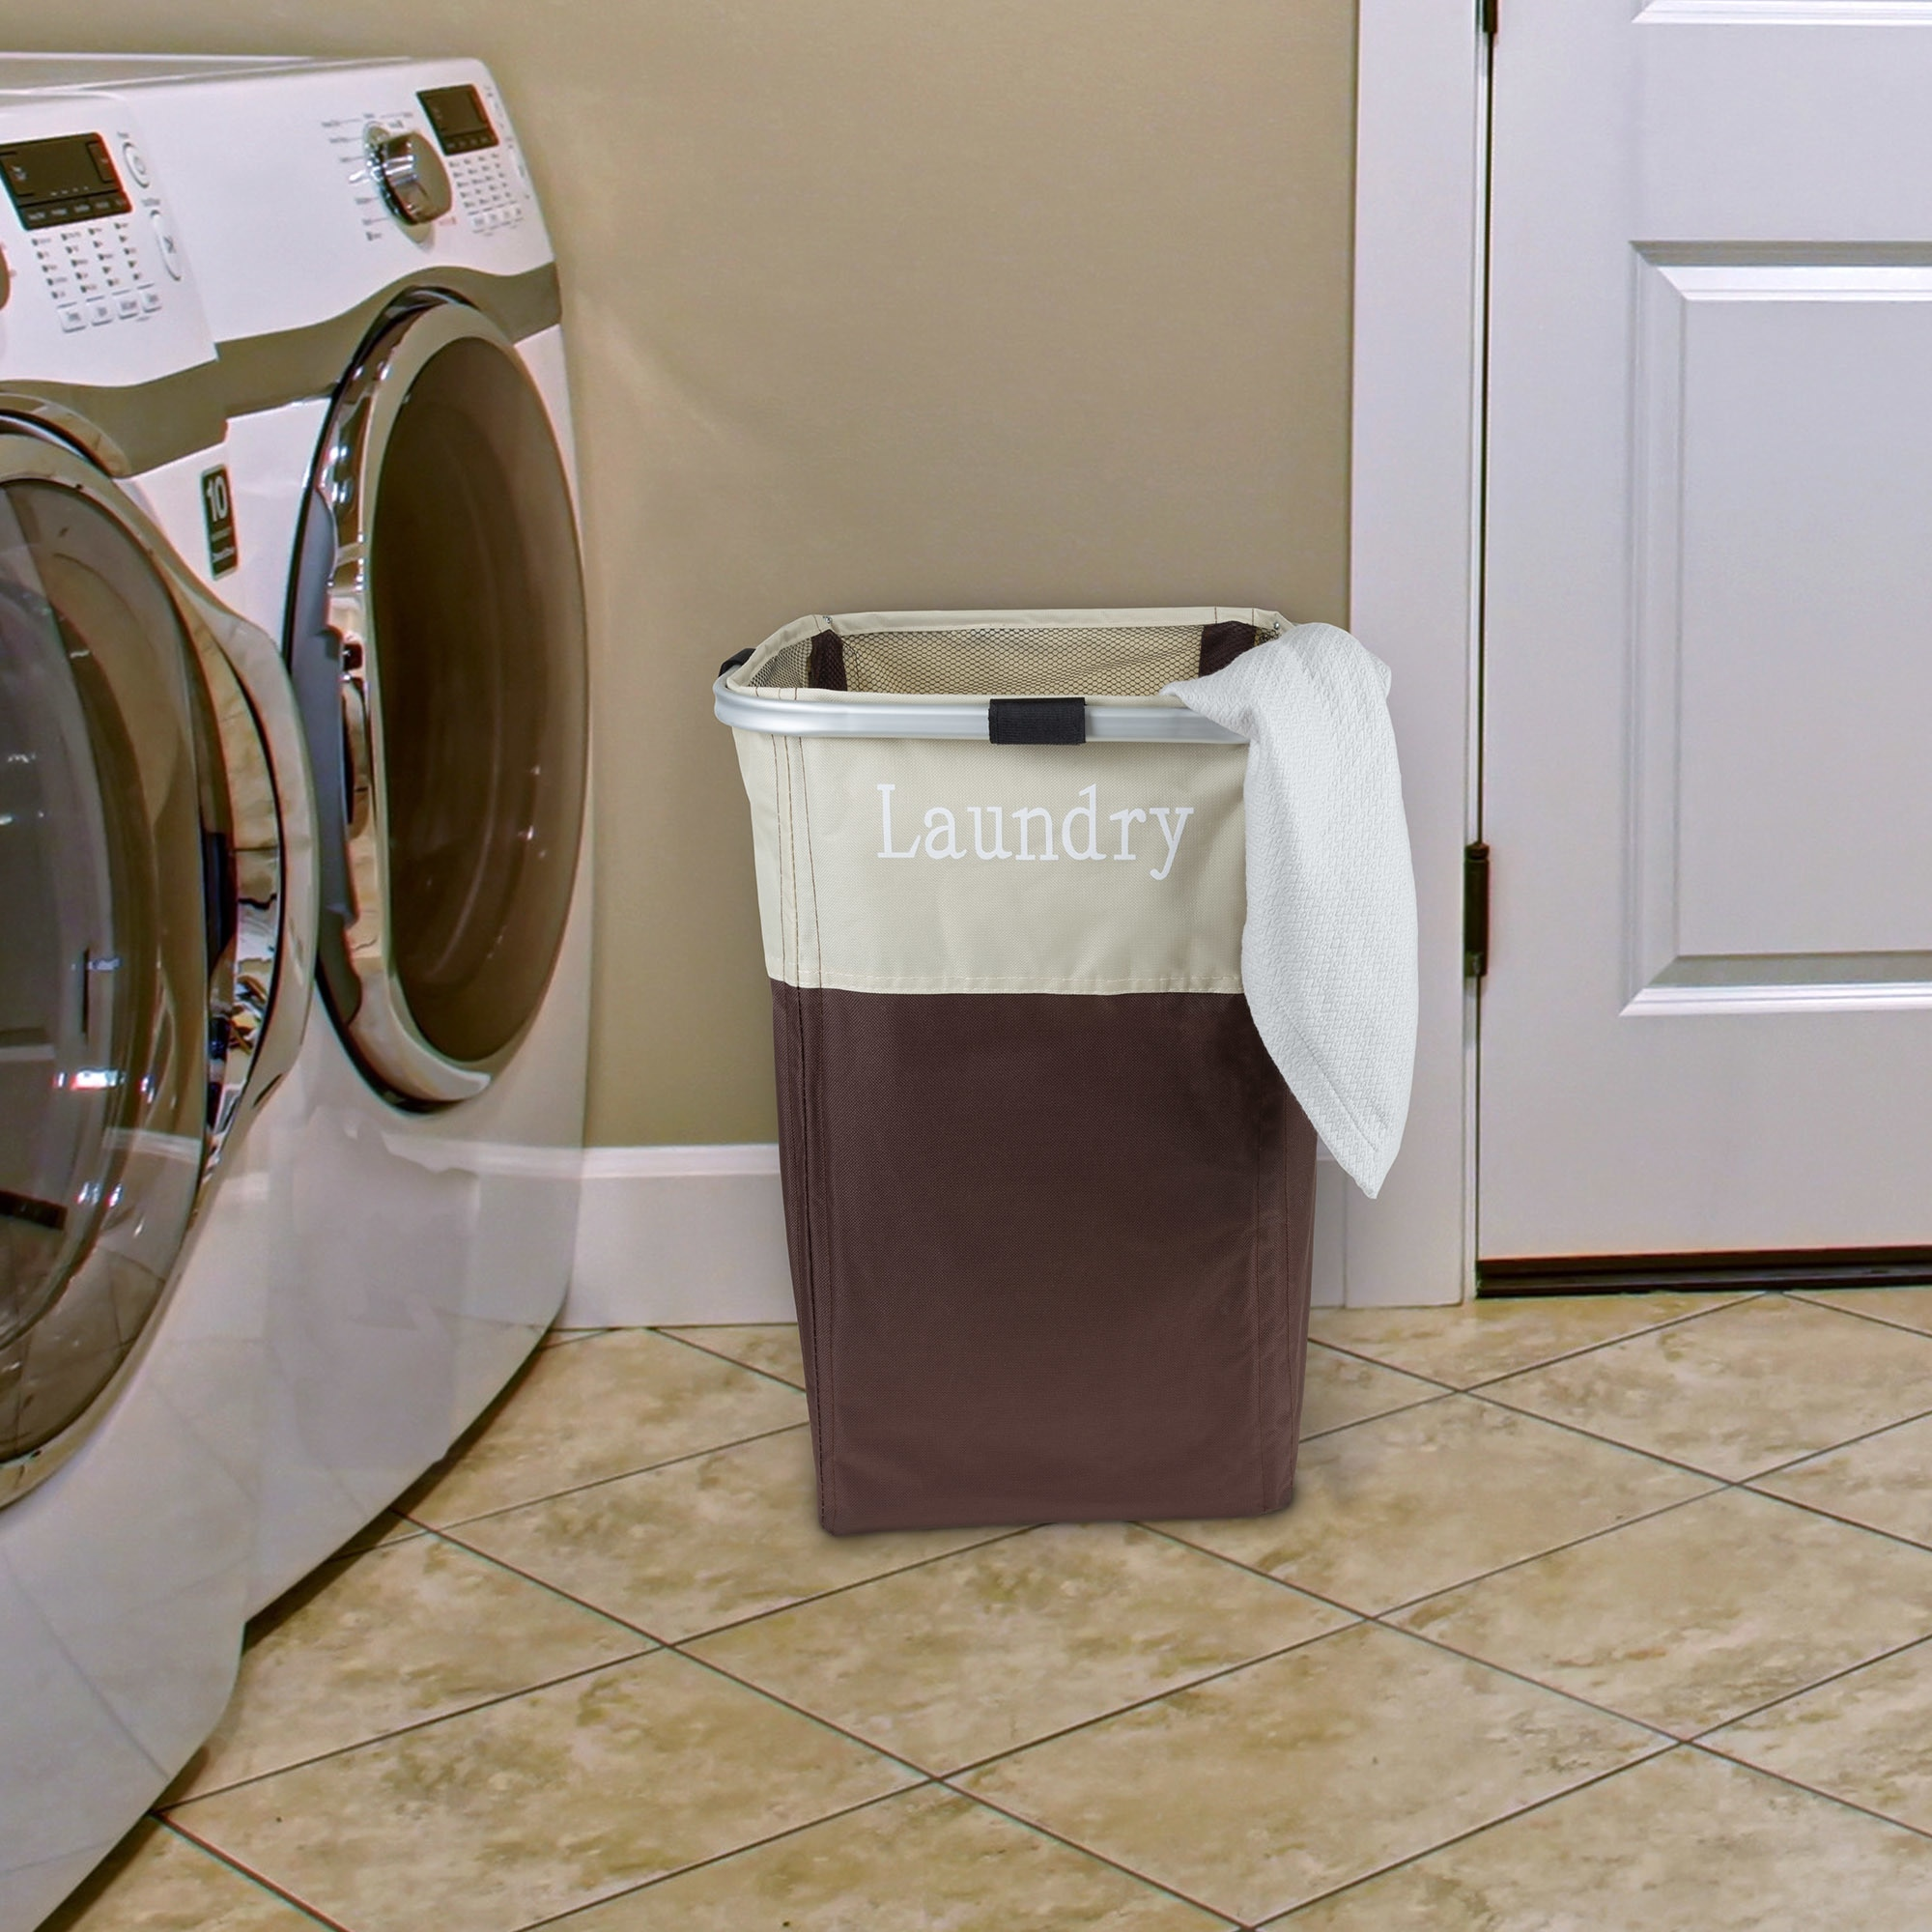 Laundry Hamper Large Collapsible Canvas Clothes Basket With Mesh Drawstring Closure By Windsor Home Overstock 20277592